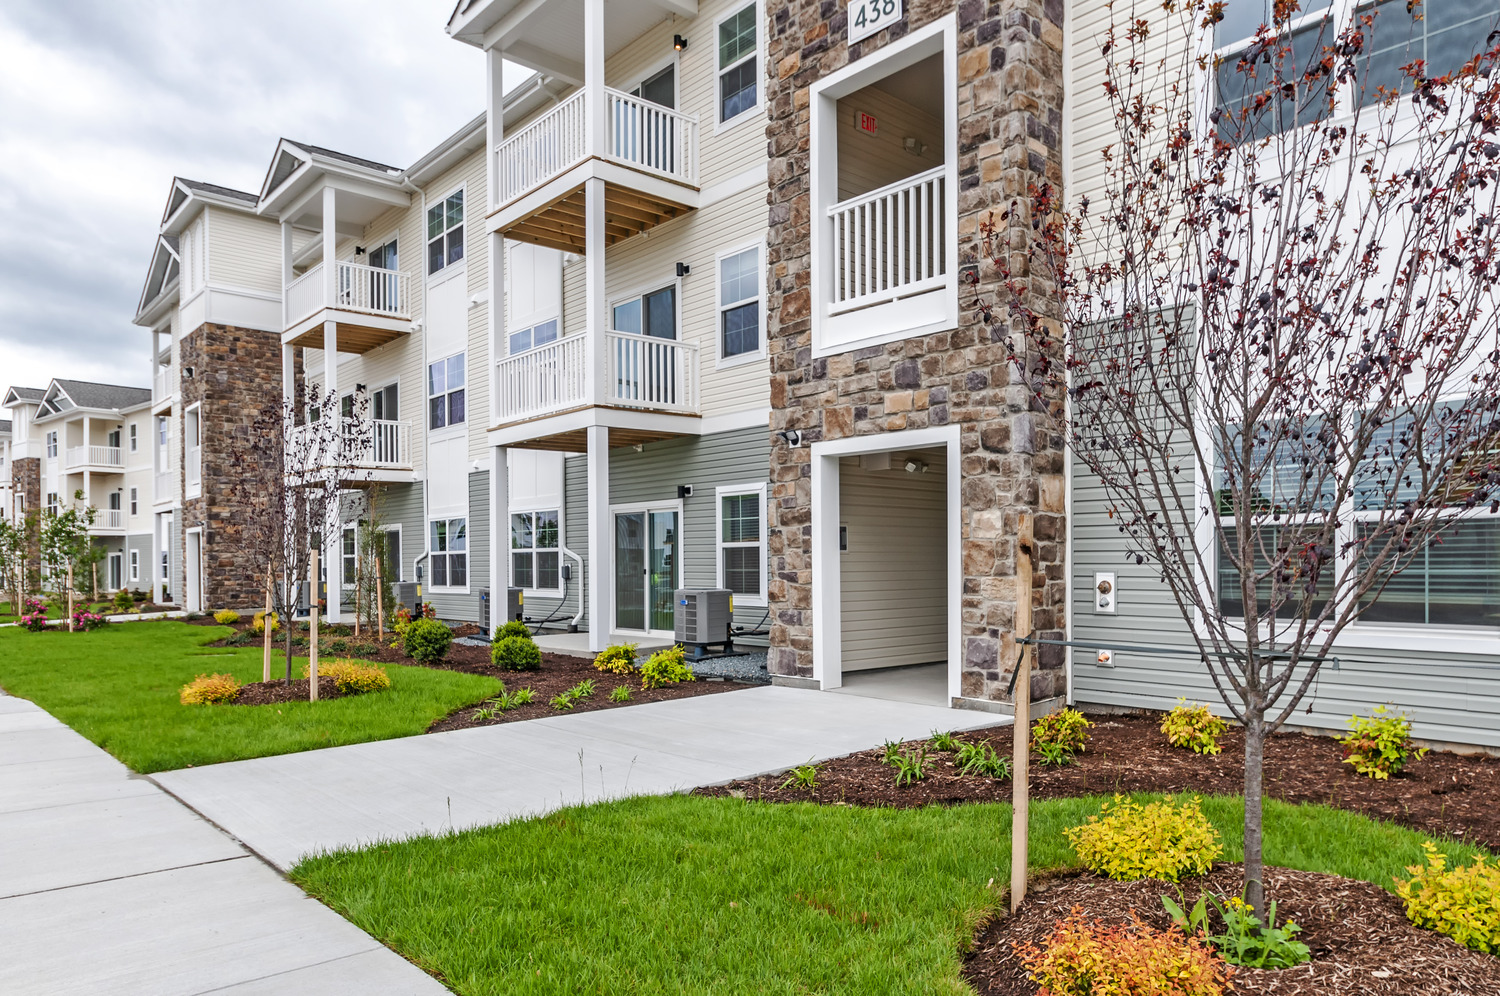 CBG builds Coventry Square, a Multi-Building Garden-Style Community with Amenities in Salisbury, MD